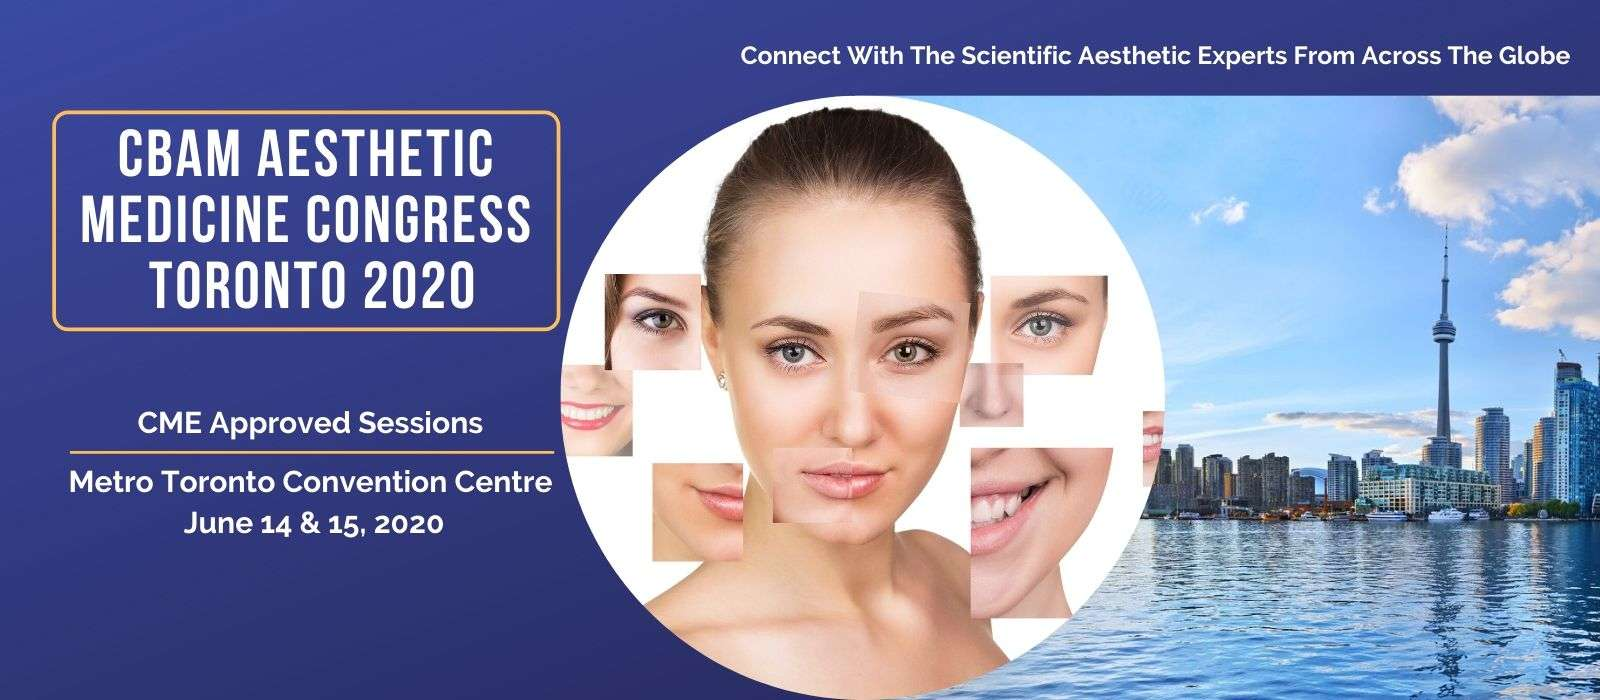 CBAM Congress, Aesthetic Medicine, MTCC, Metro Toronto Convention Centre, Aesthetic Expo, Aesthetic Show, Aesthetic Conference